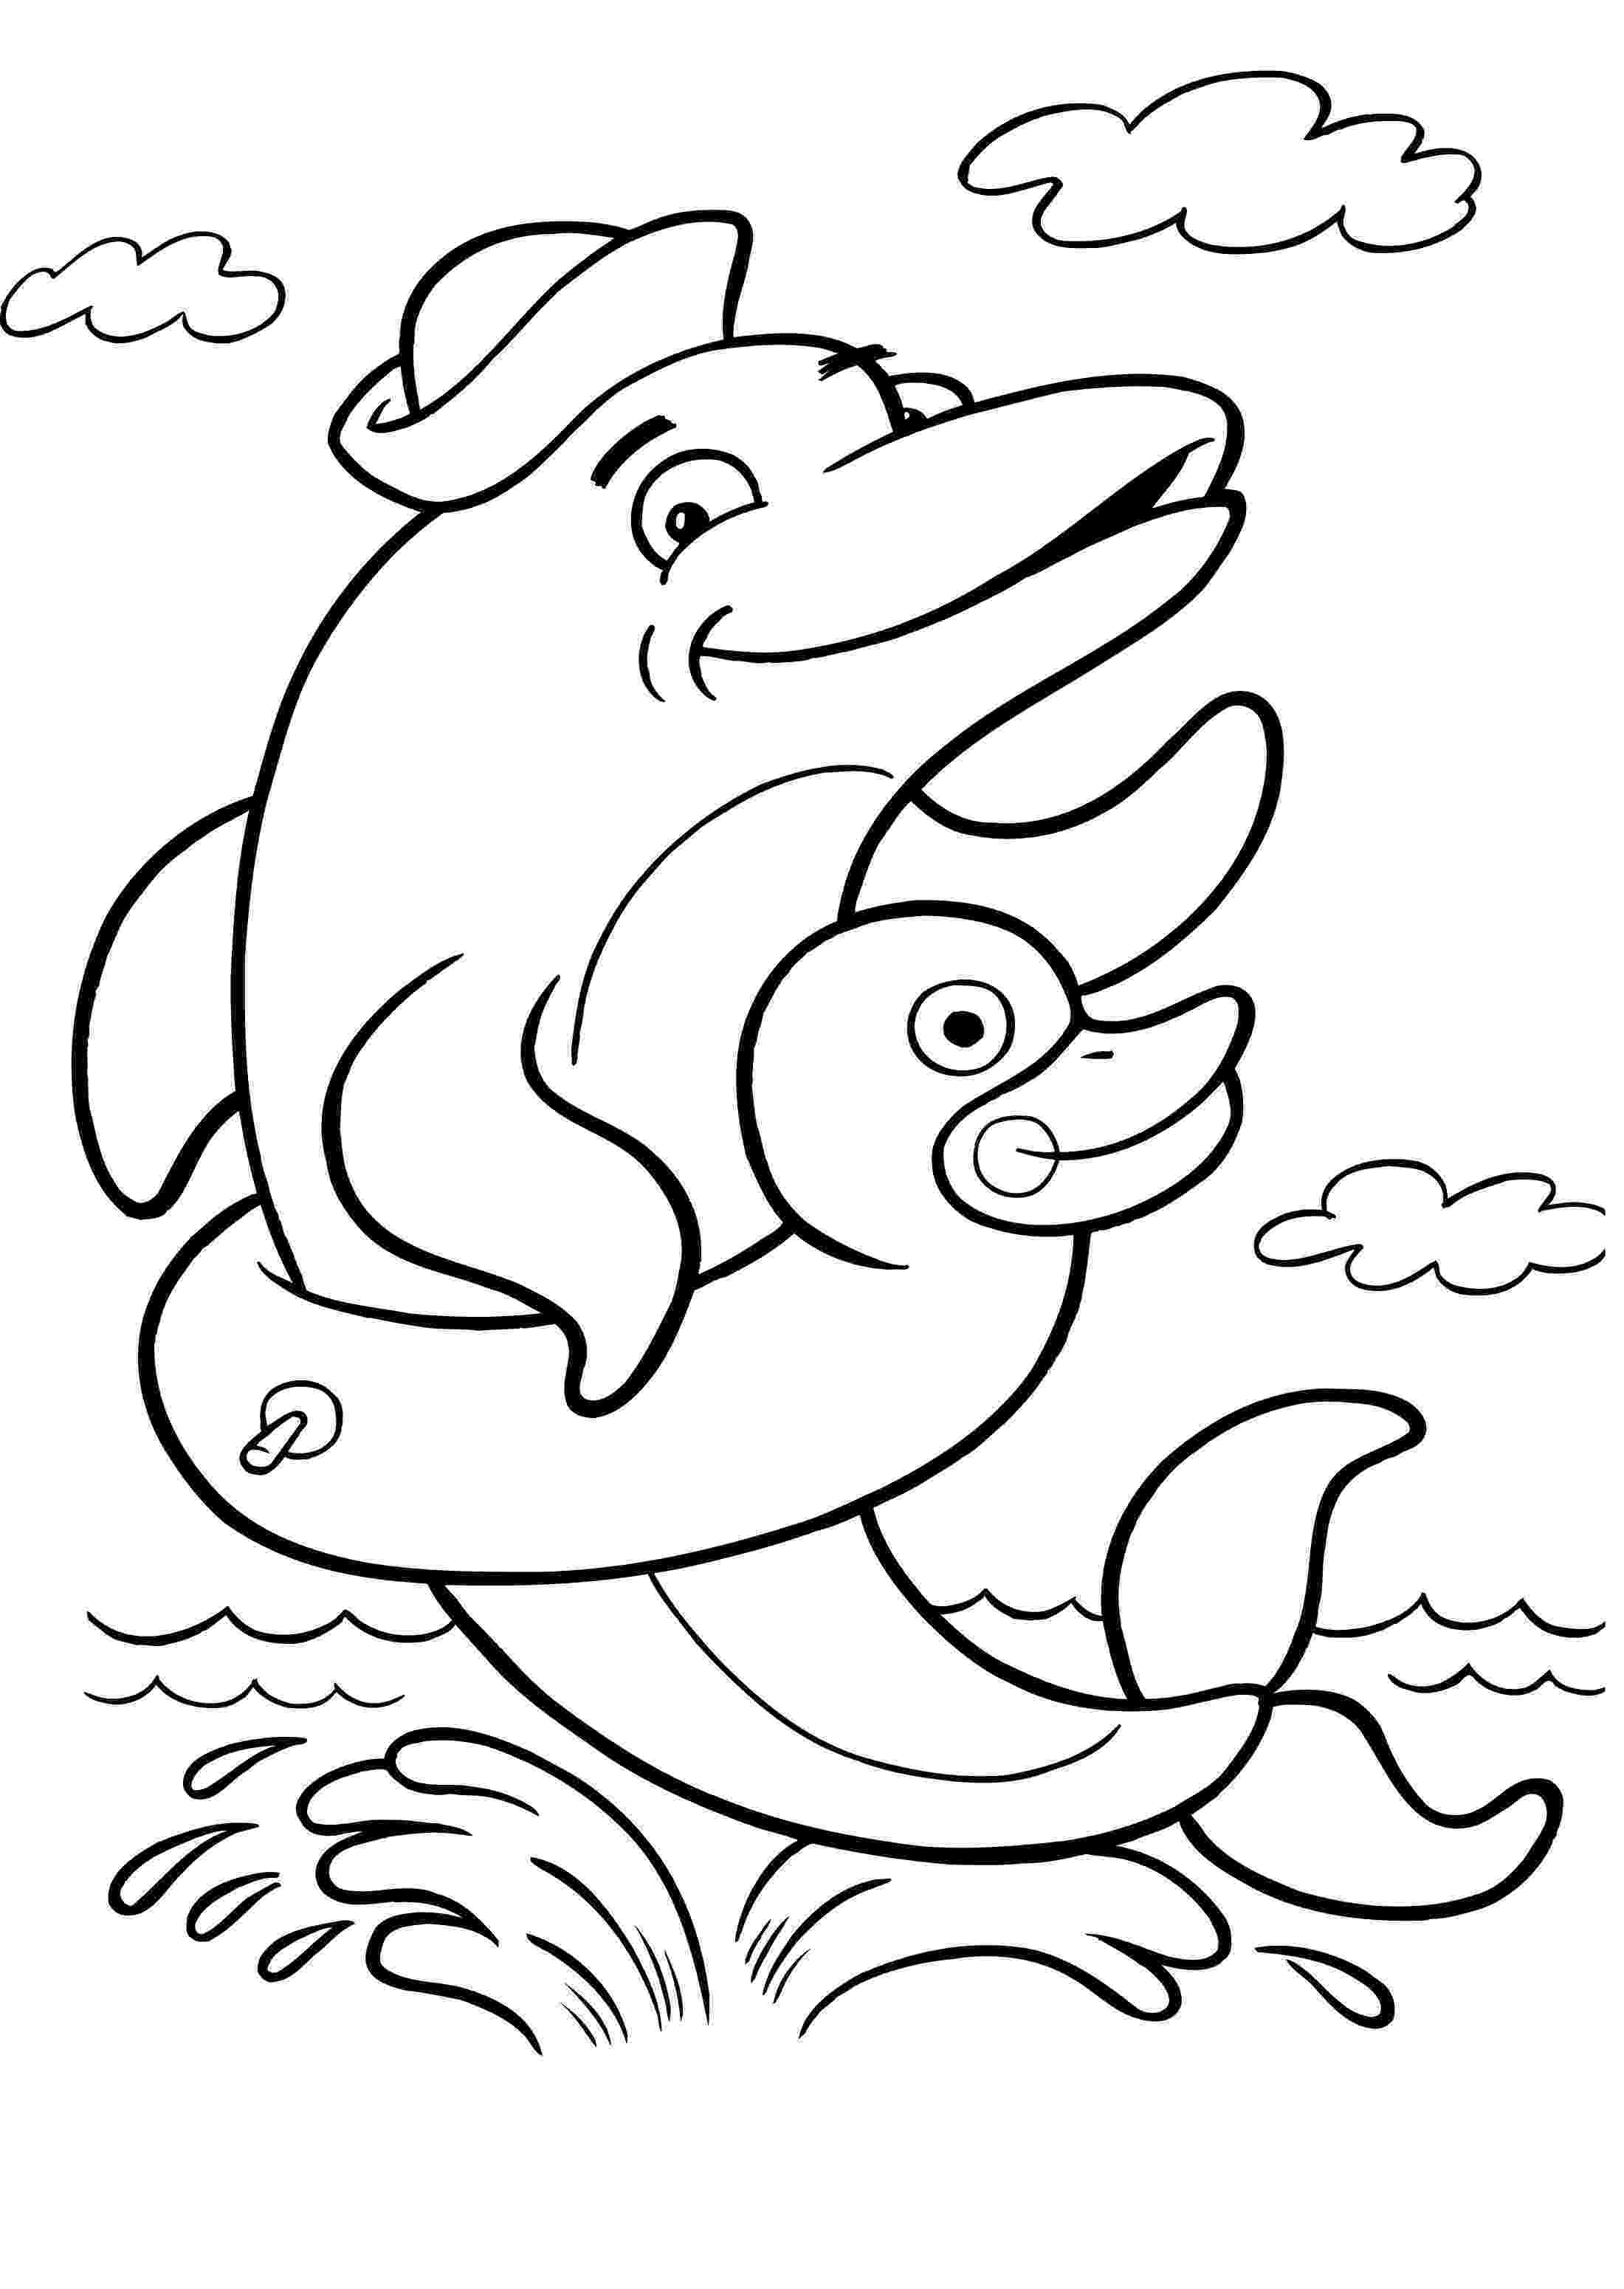 pictures of dolphins to color dolphin coloring pages download and print for free to pictures color dolphins of